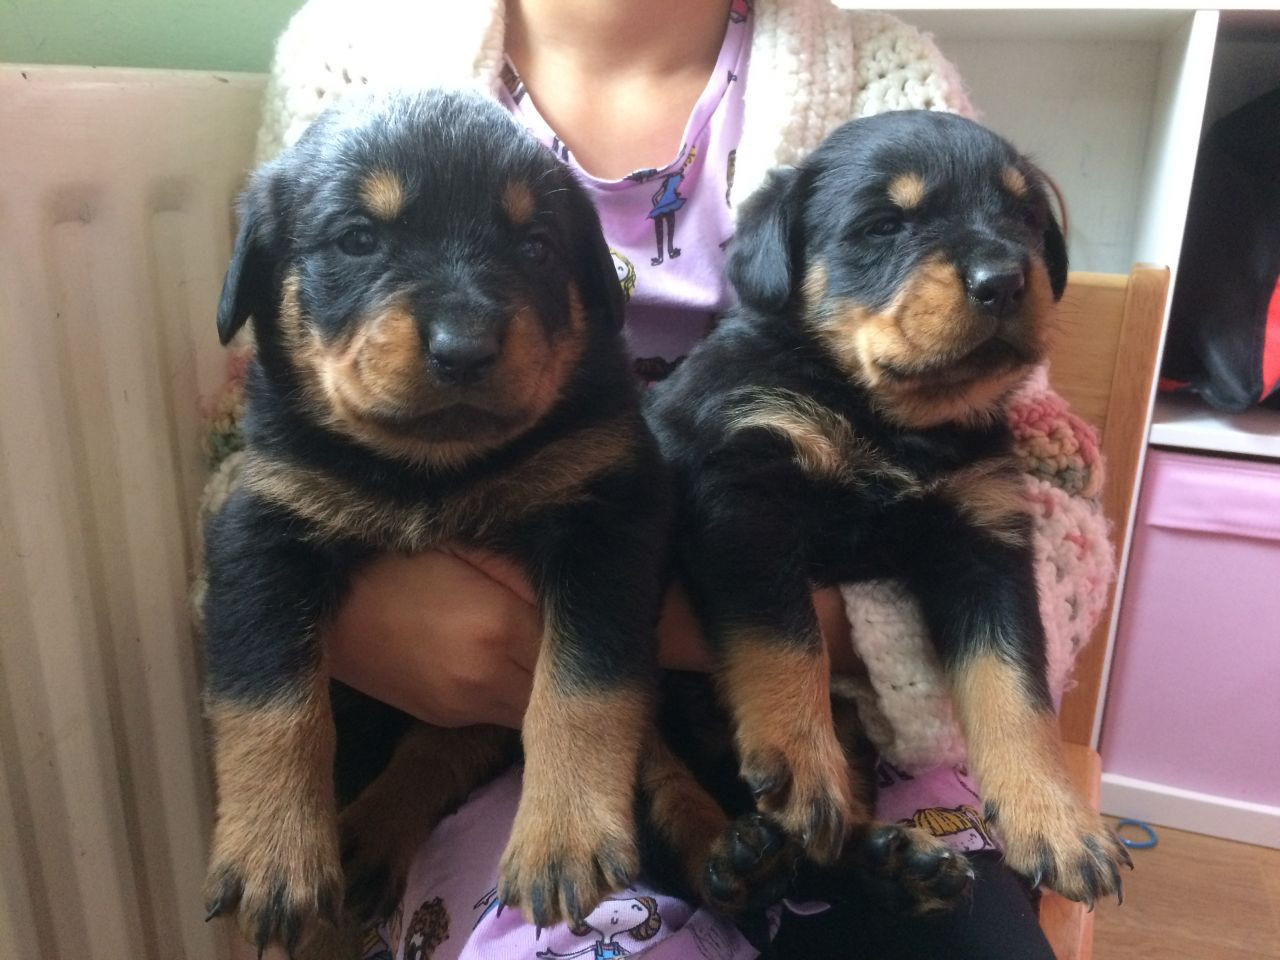 My Friends Told Me About You / Guide rottweiler puppies for